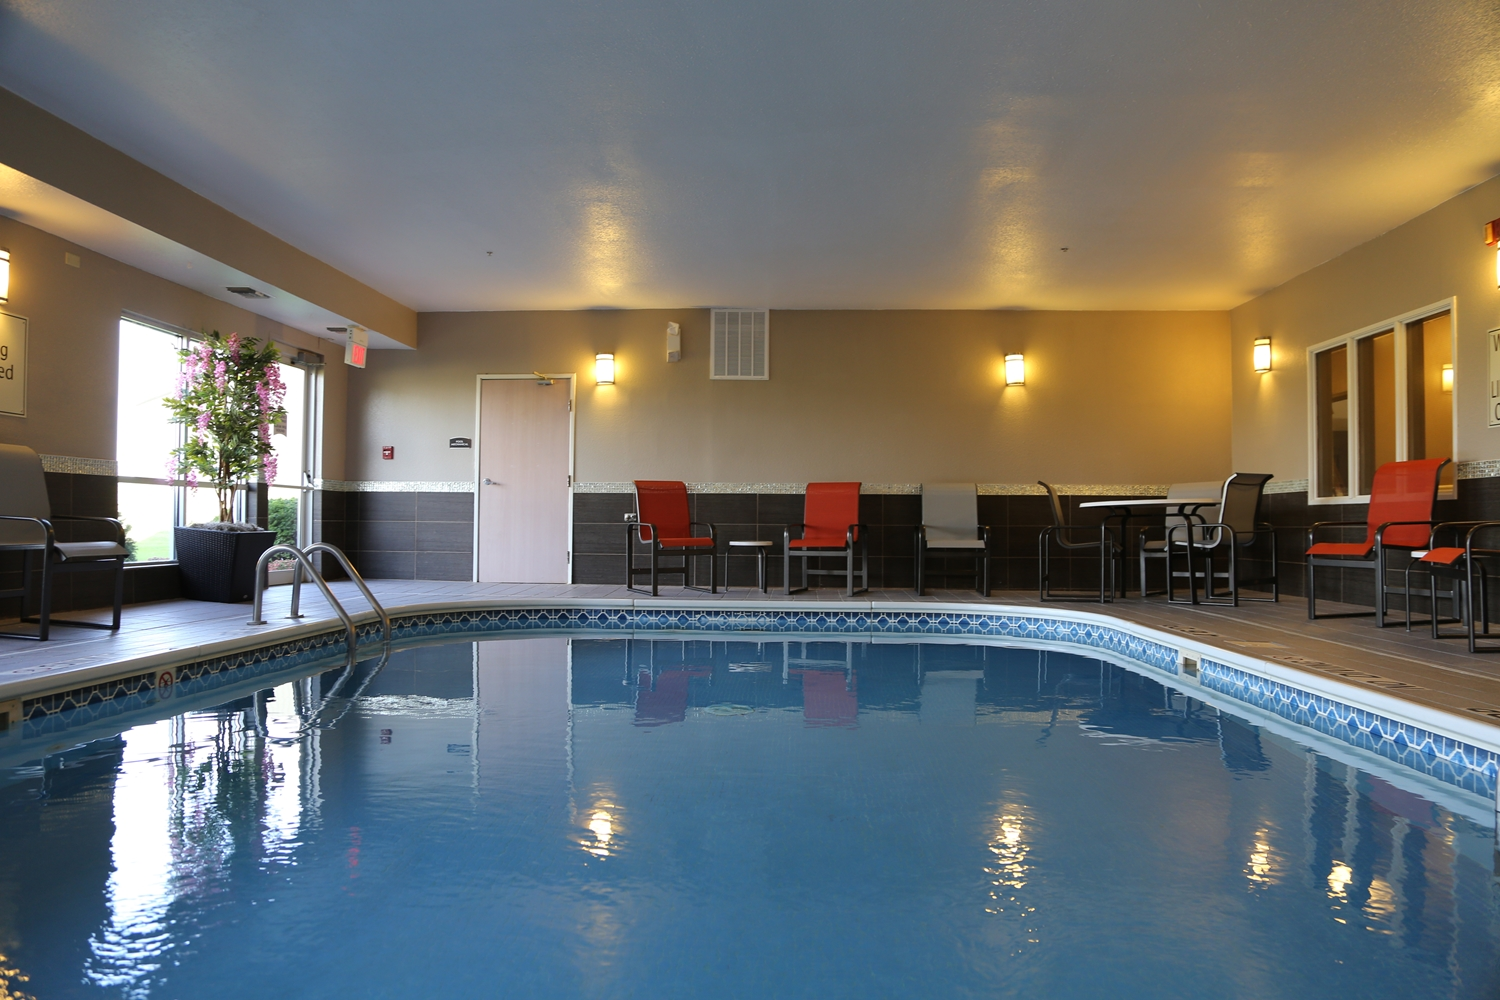 Pool - Best Western Pearl City Inn Muscatine